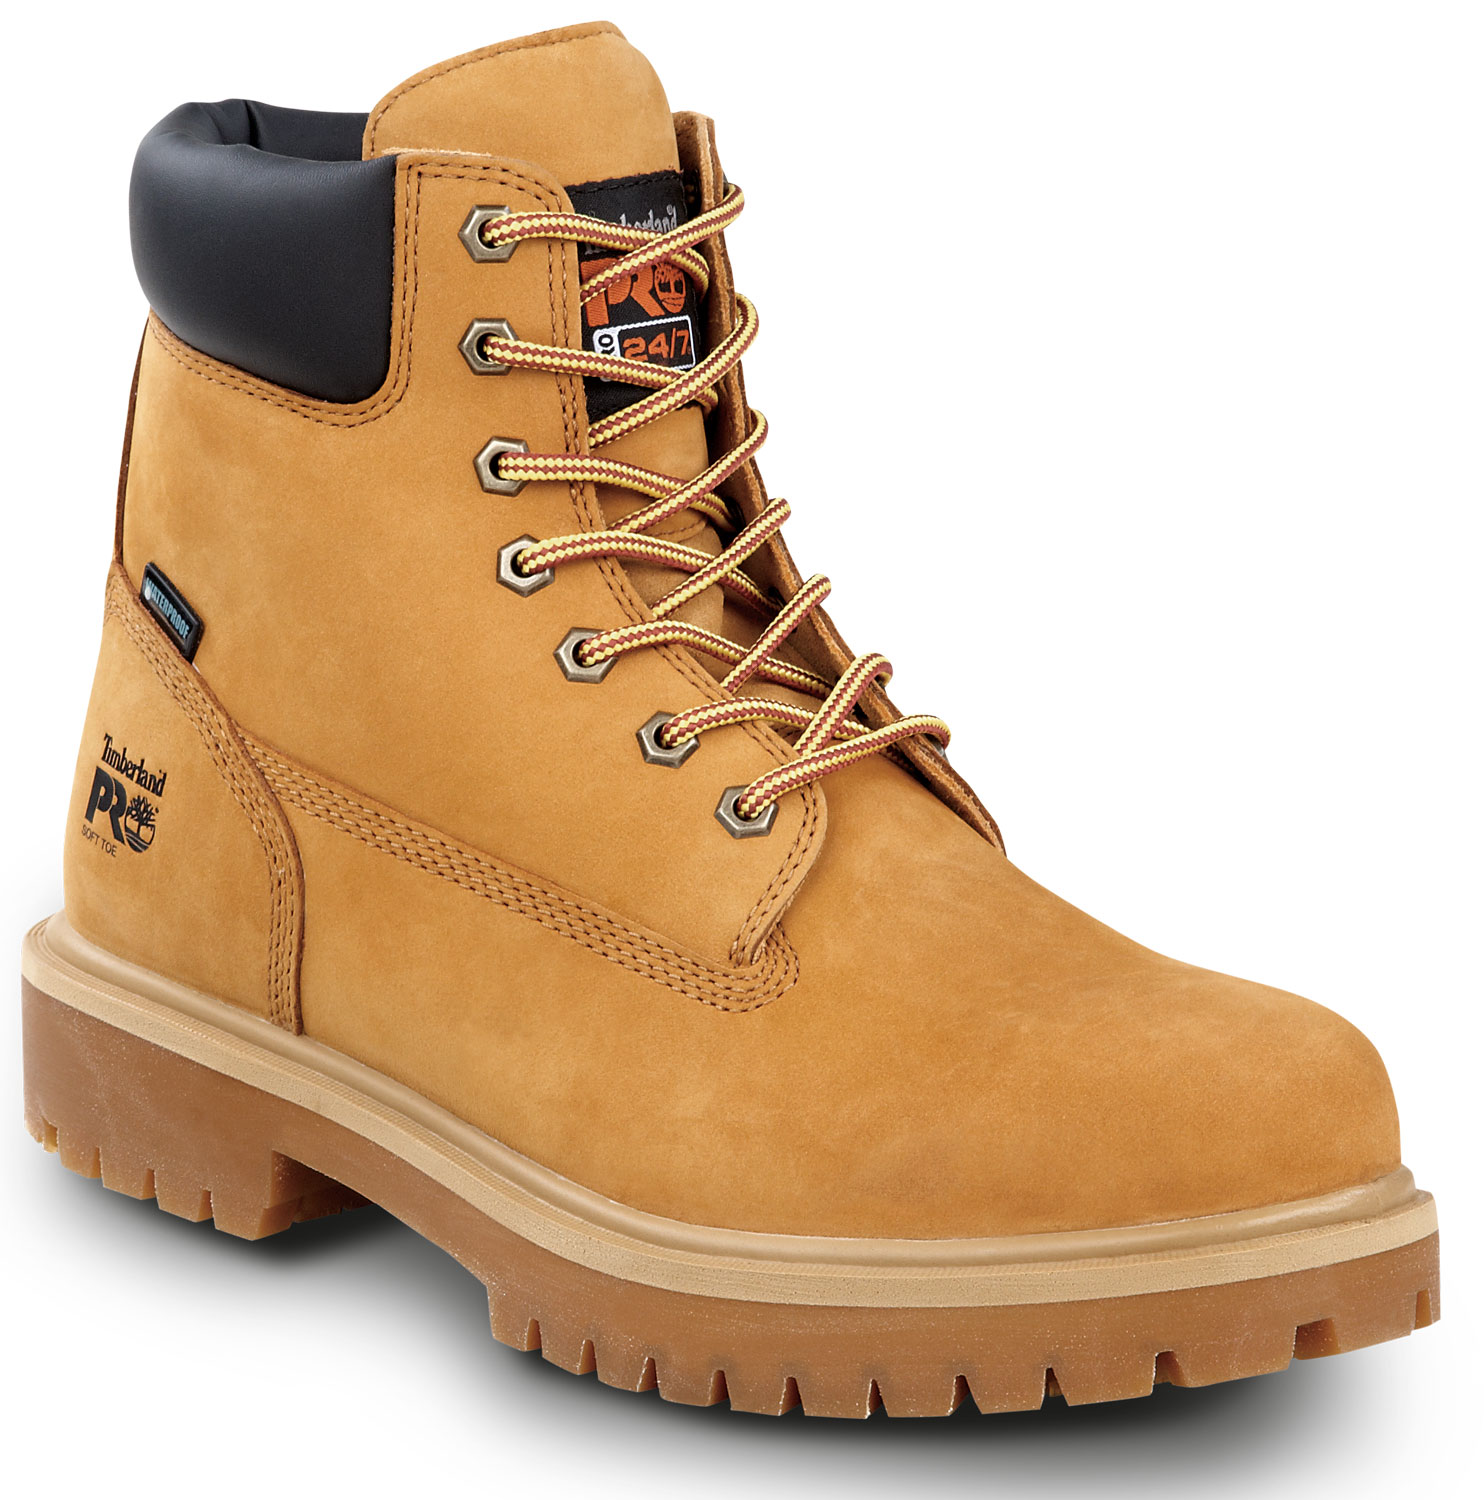 6cde26c3 ... Timberland PRO STMA1V48 6IN Direct Attach Men's, Wheat, Soft Toe, Slip  Resistant, click to zoom ...